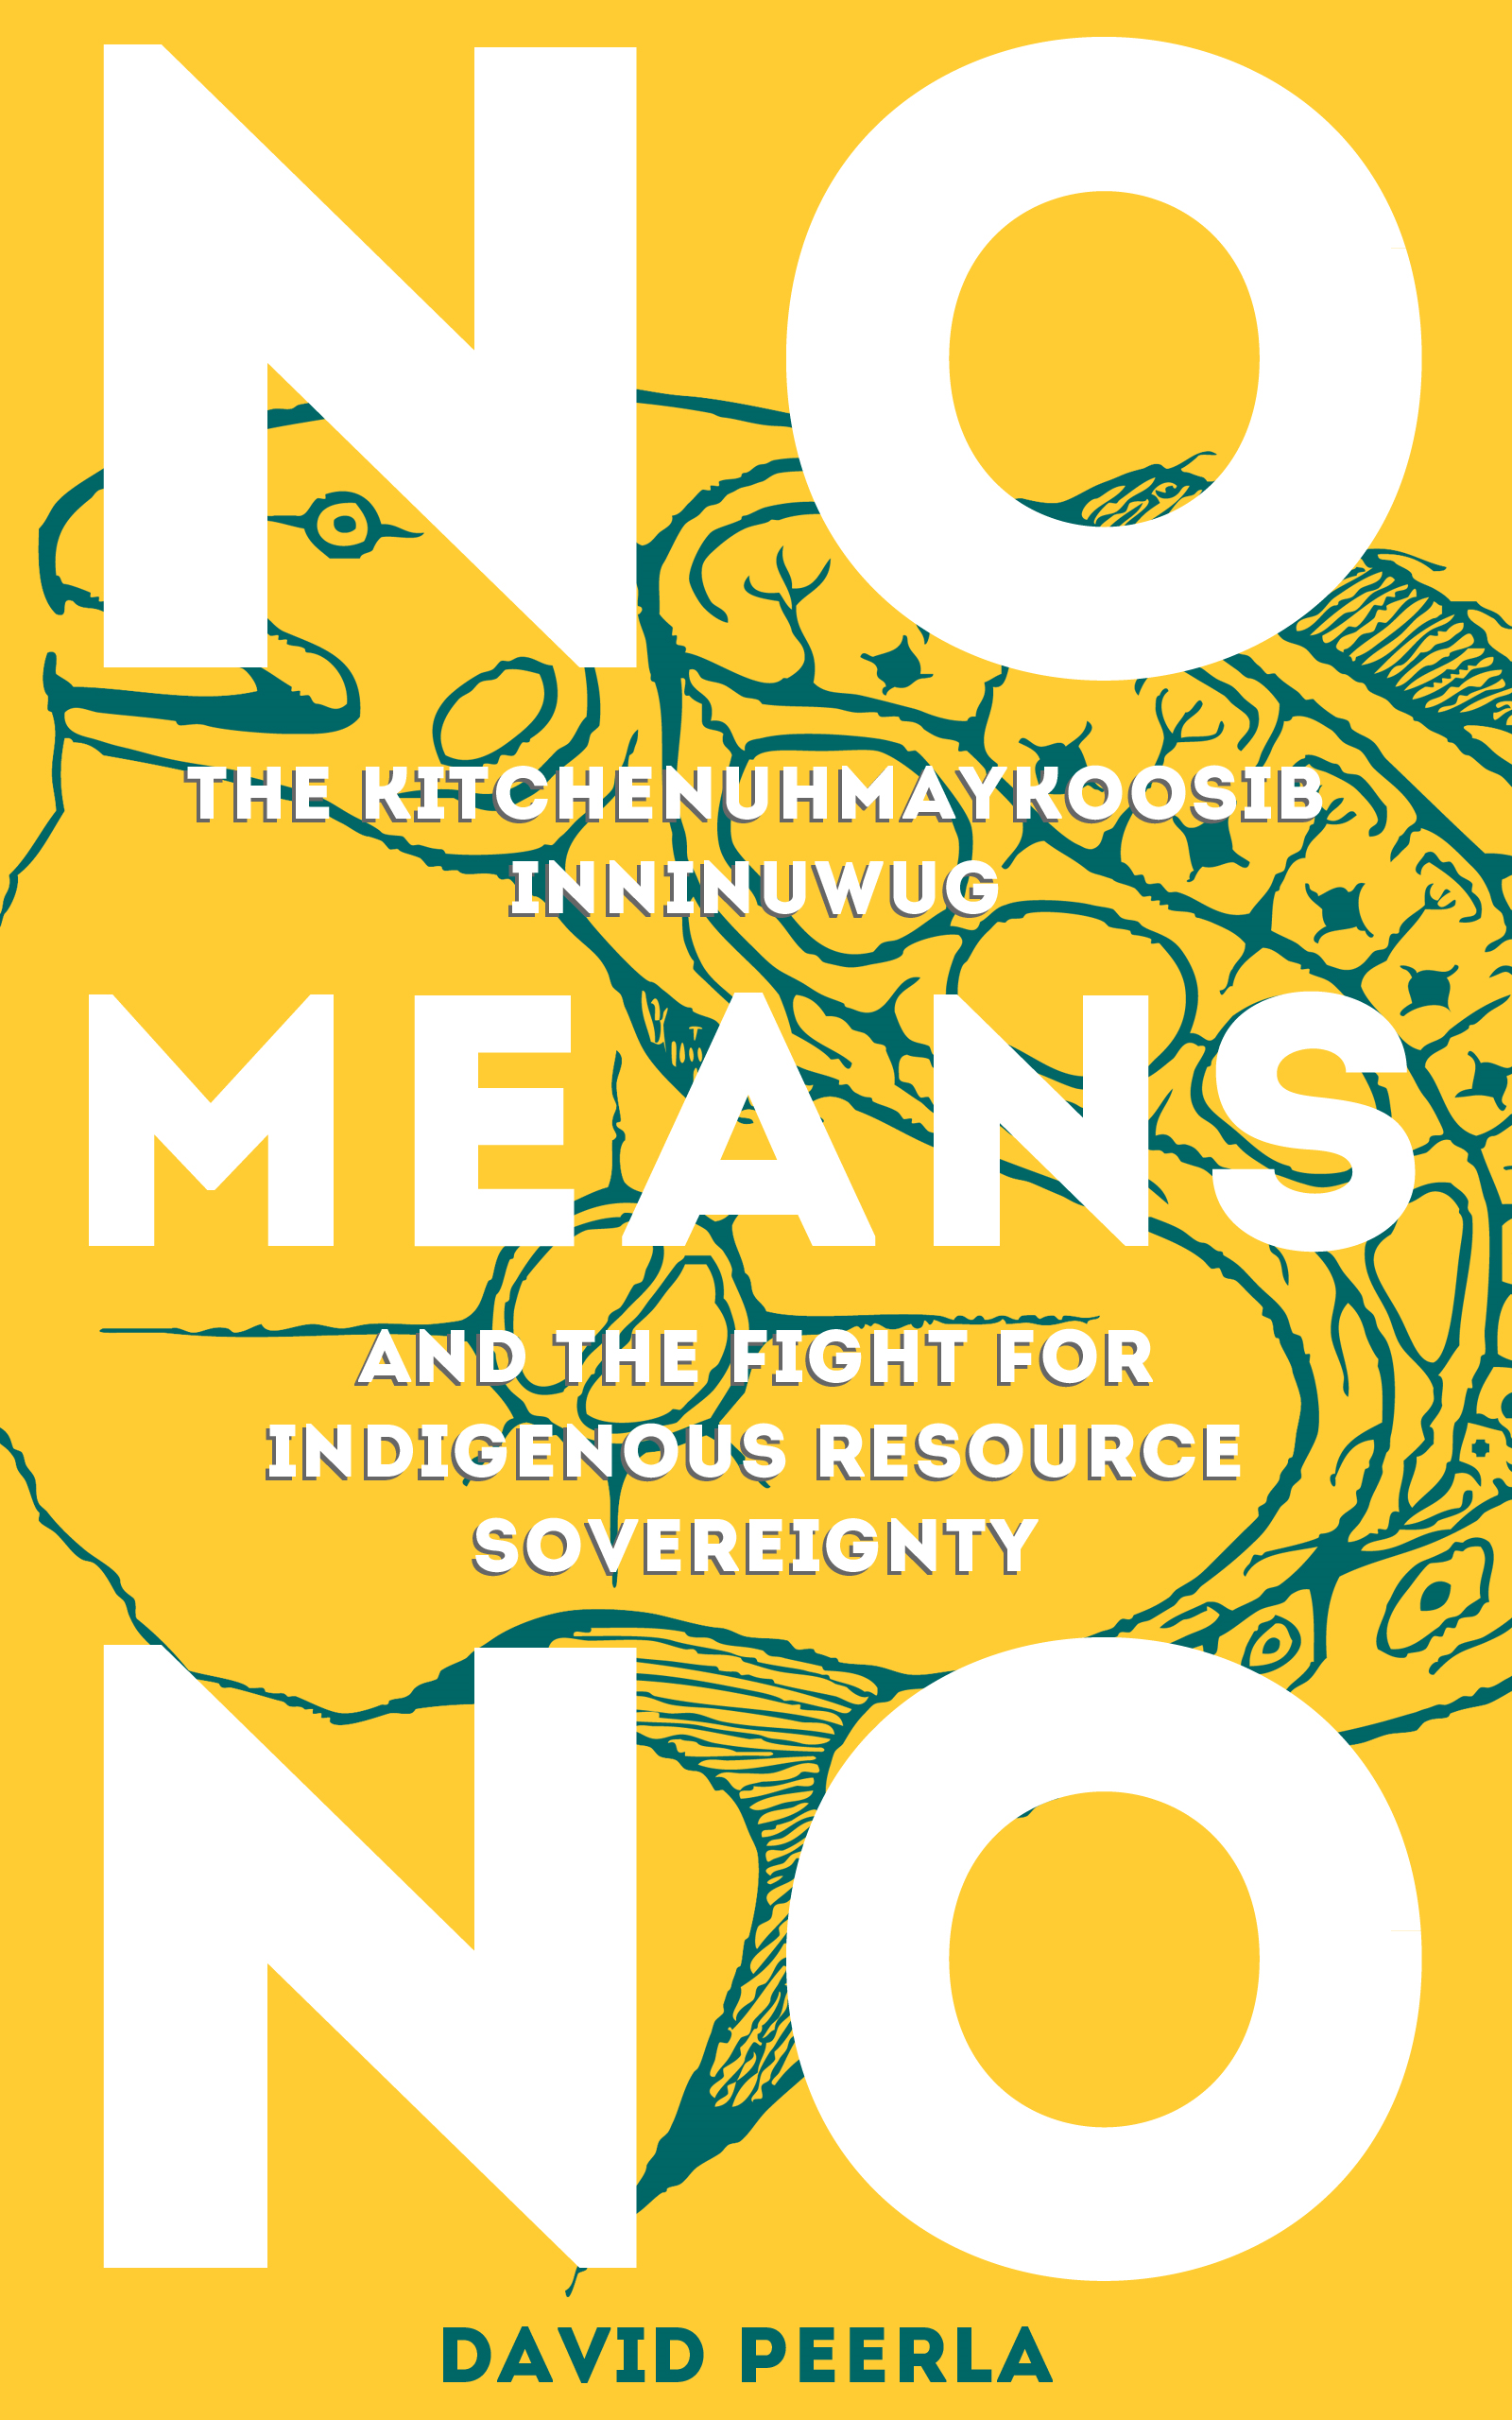 NO MEANS NO, THE KITCHENUHMAYKOOSIB INNINUWUG AND THE FIGHT FOR RESOURCE SOVEREIGNTY